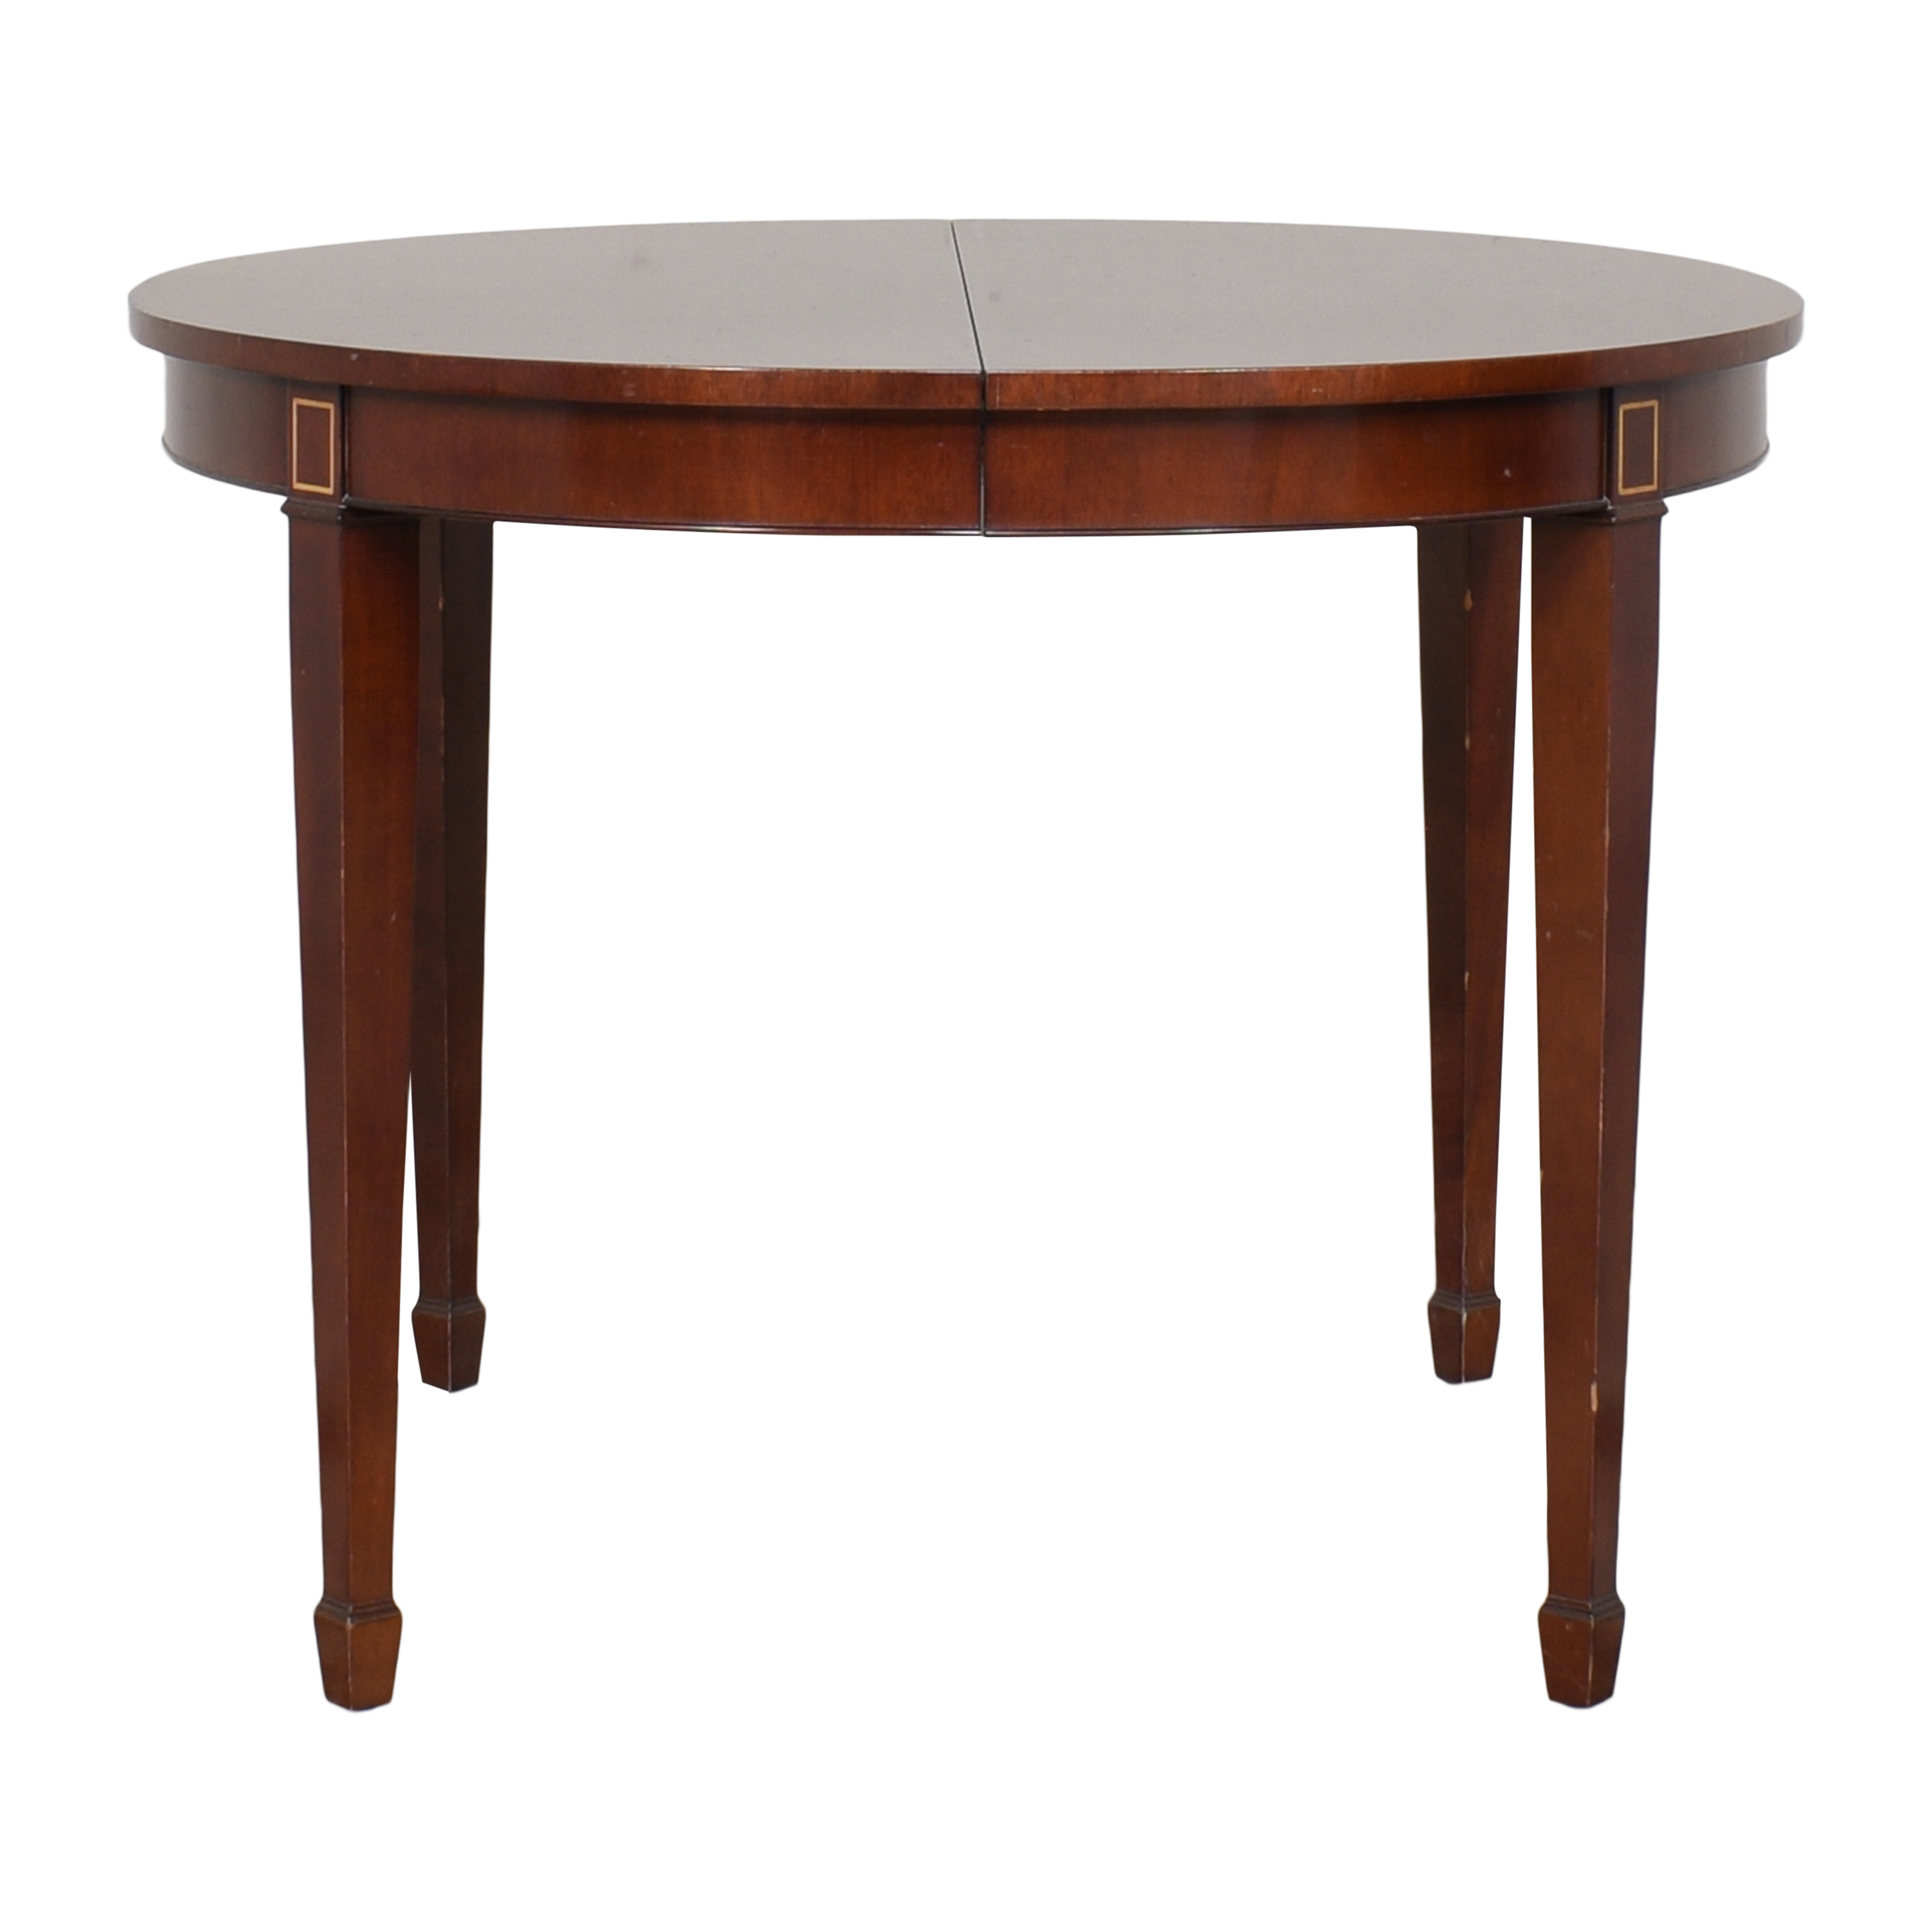 Kindel Kindel Round Extendable Dining Table pa